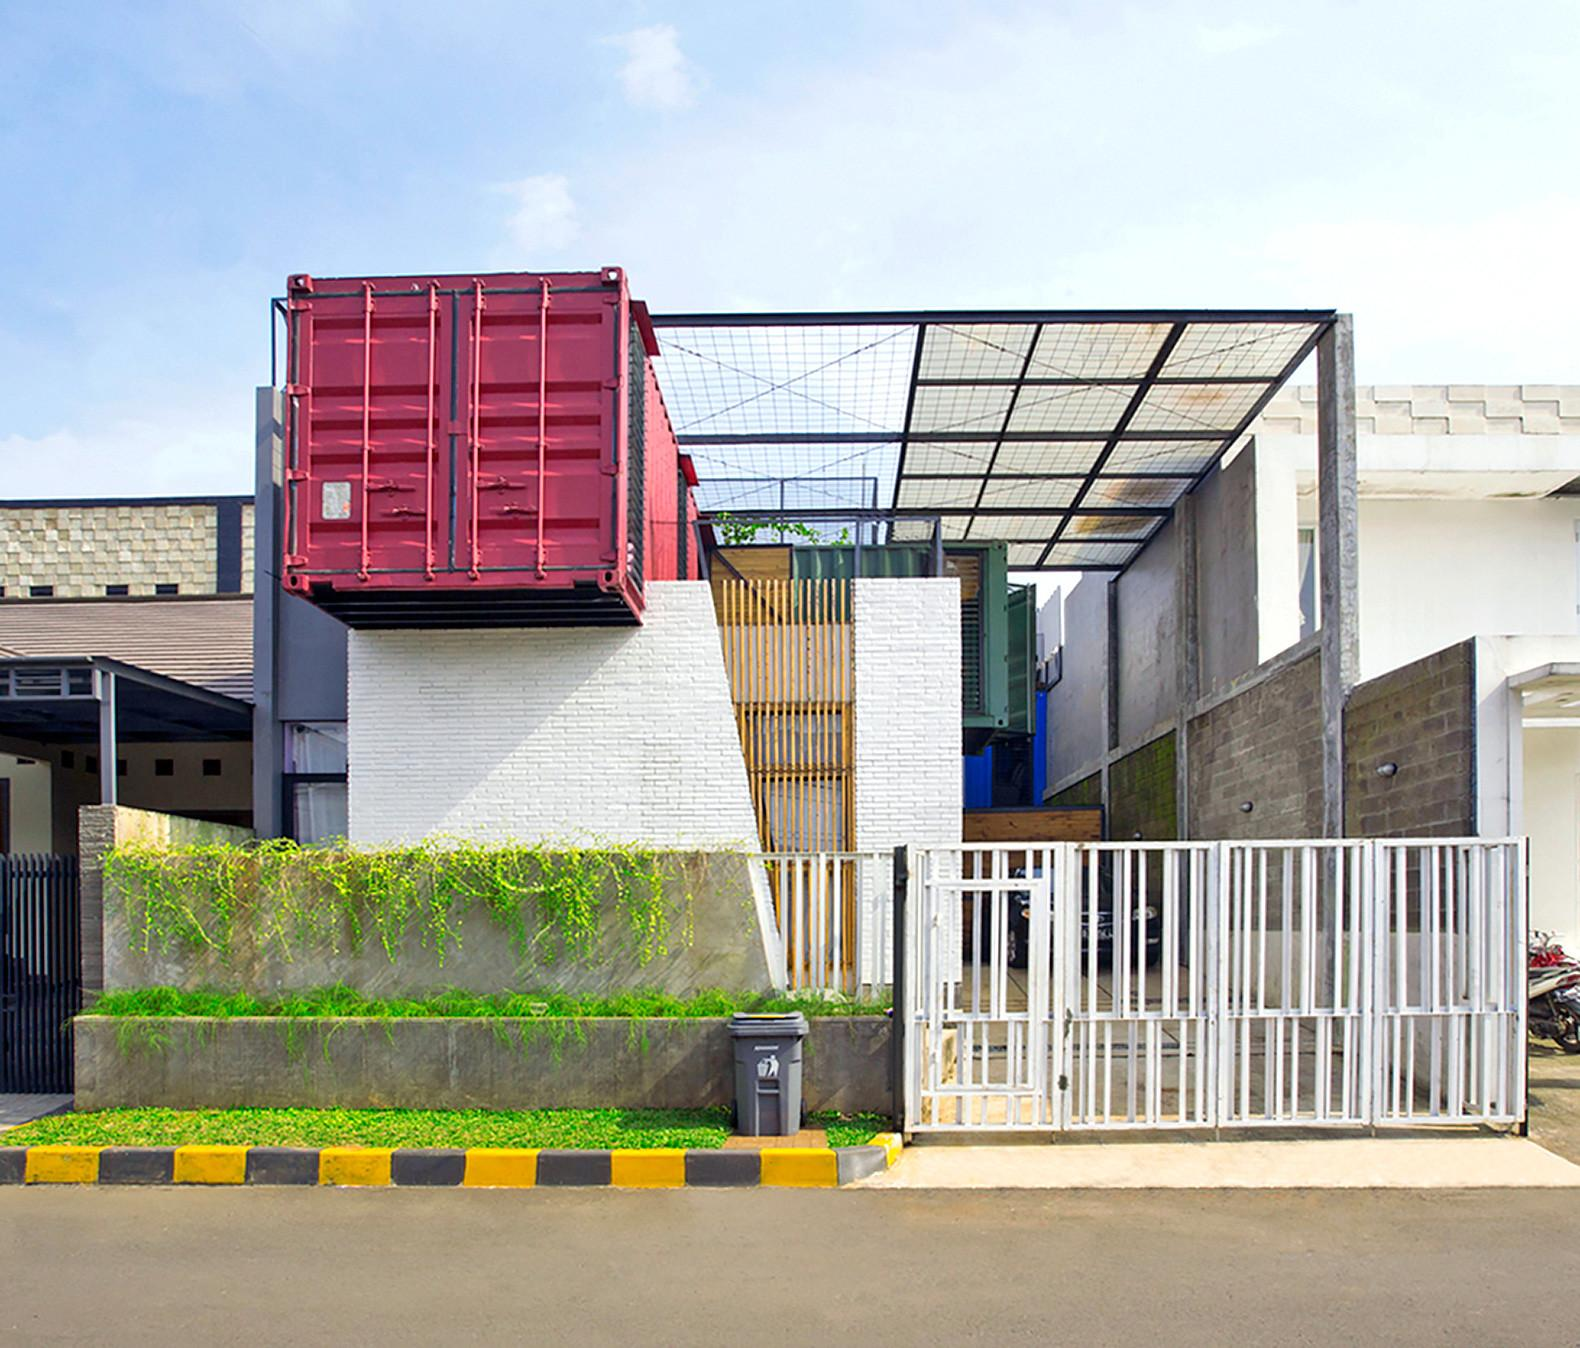 Four Overlapping Shipping Containers Make Charming Multi